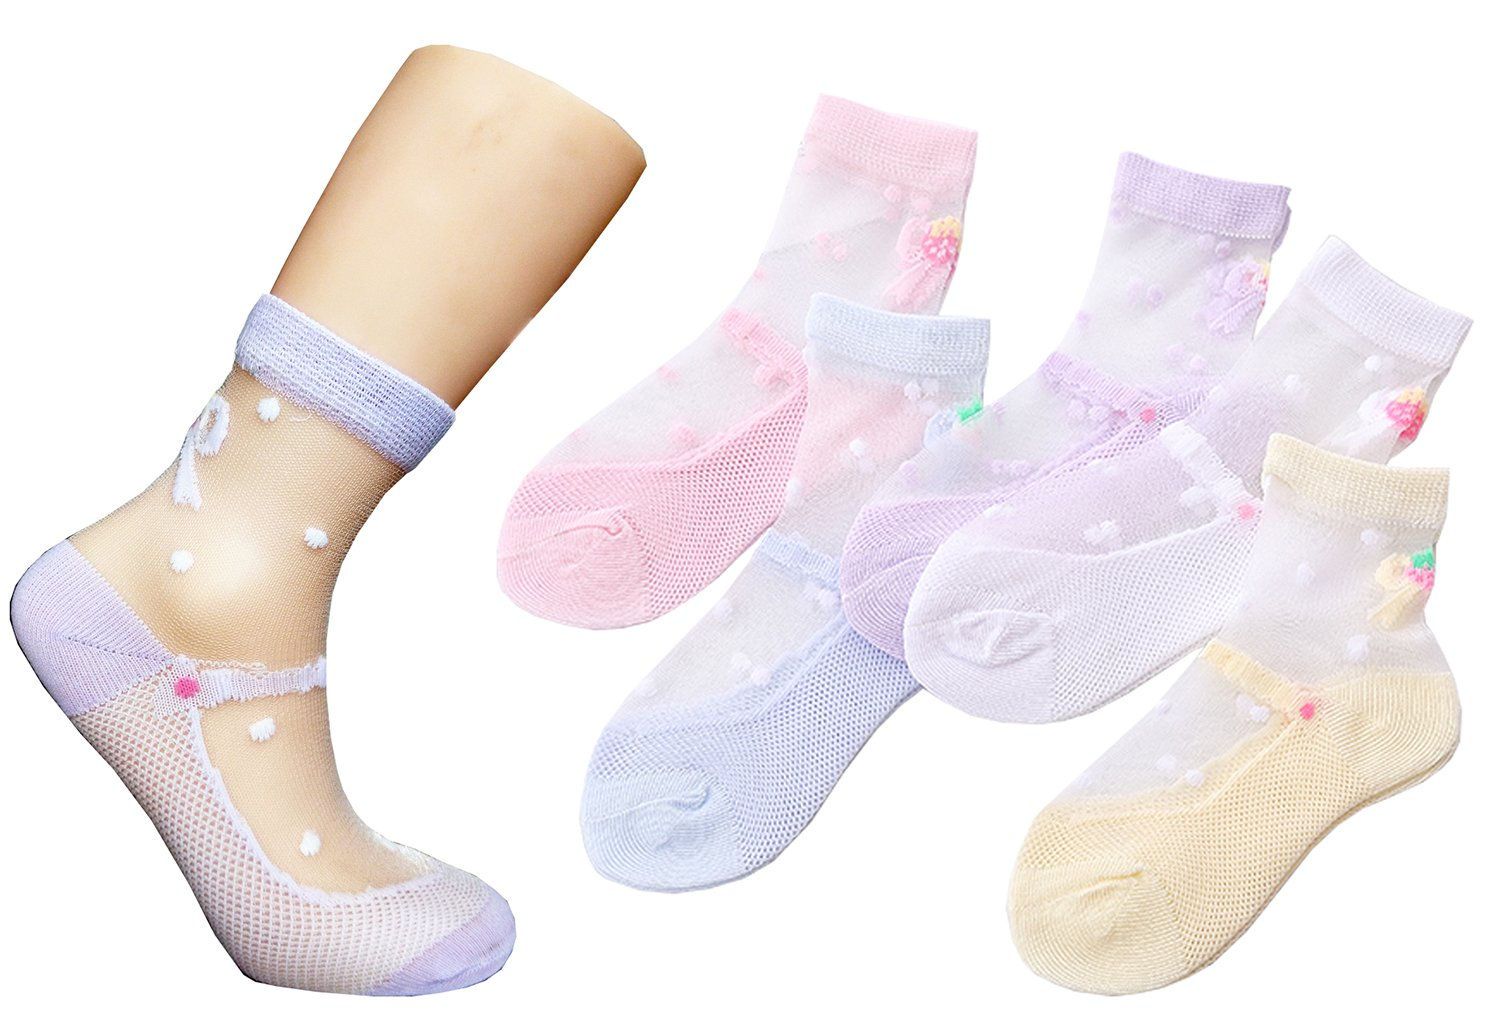 Searchself Little Girls' Cotton Lace Transparent Thin Socks (Pack of 5) (6-8 Years, Bowknot)